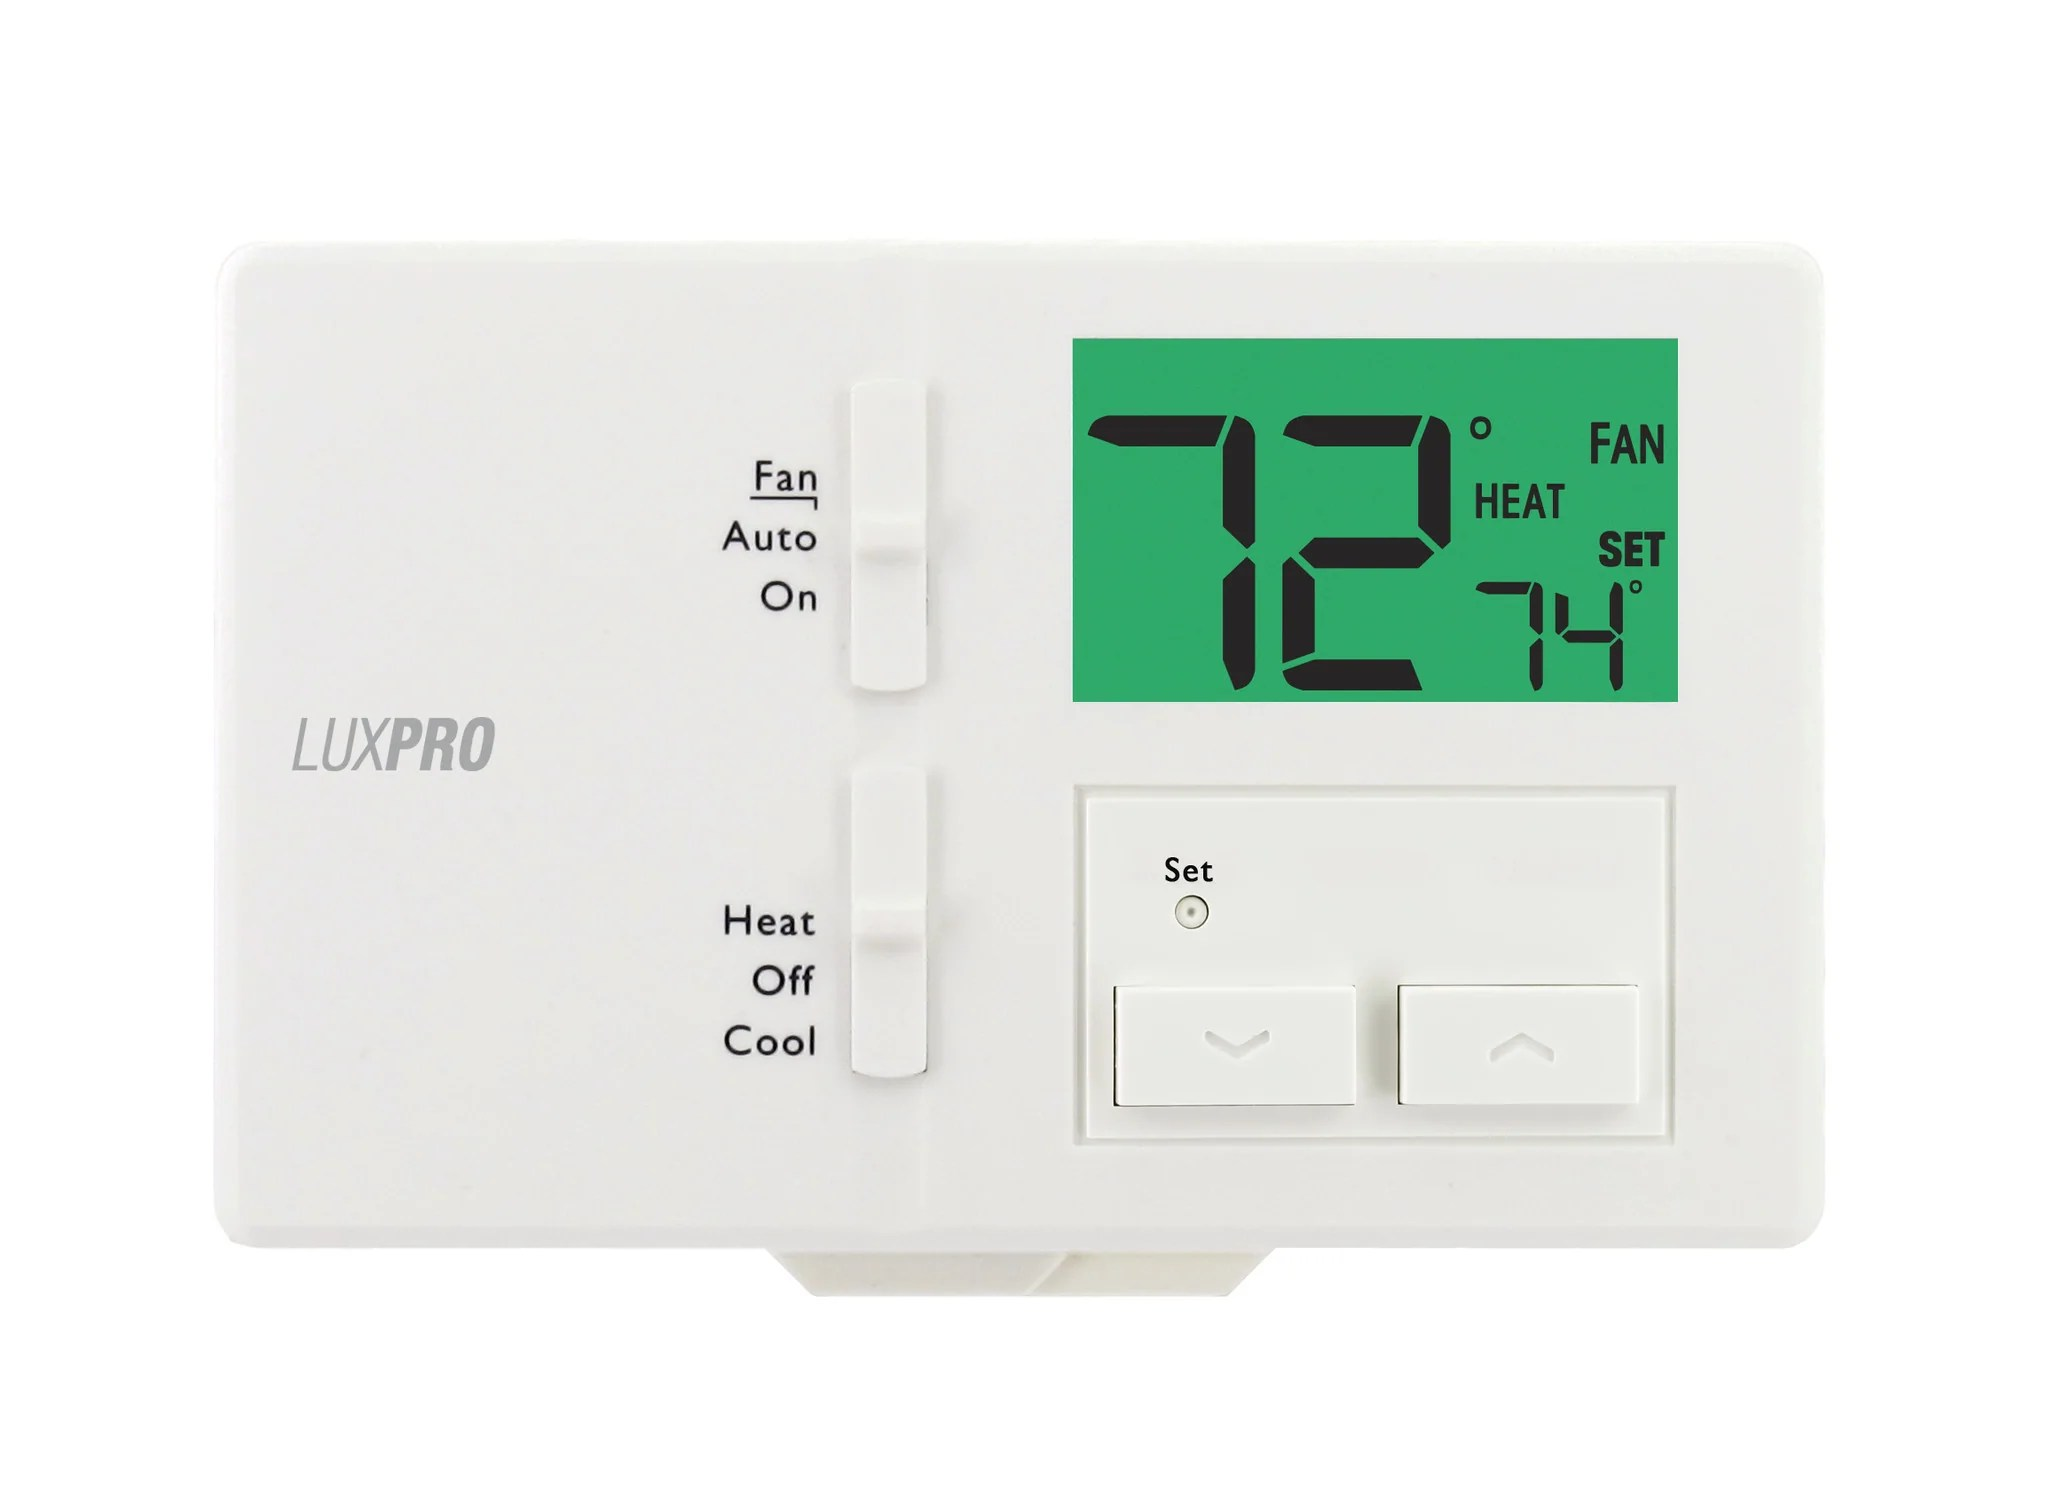 luxpro thermostat 2wire wiring diagram example electrical wiring 3m thermostat diagram luxpro p111 non programmable thermostat [ 2048 x 1490 Pixel ]